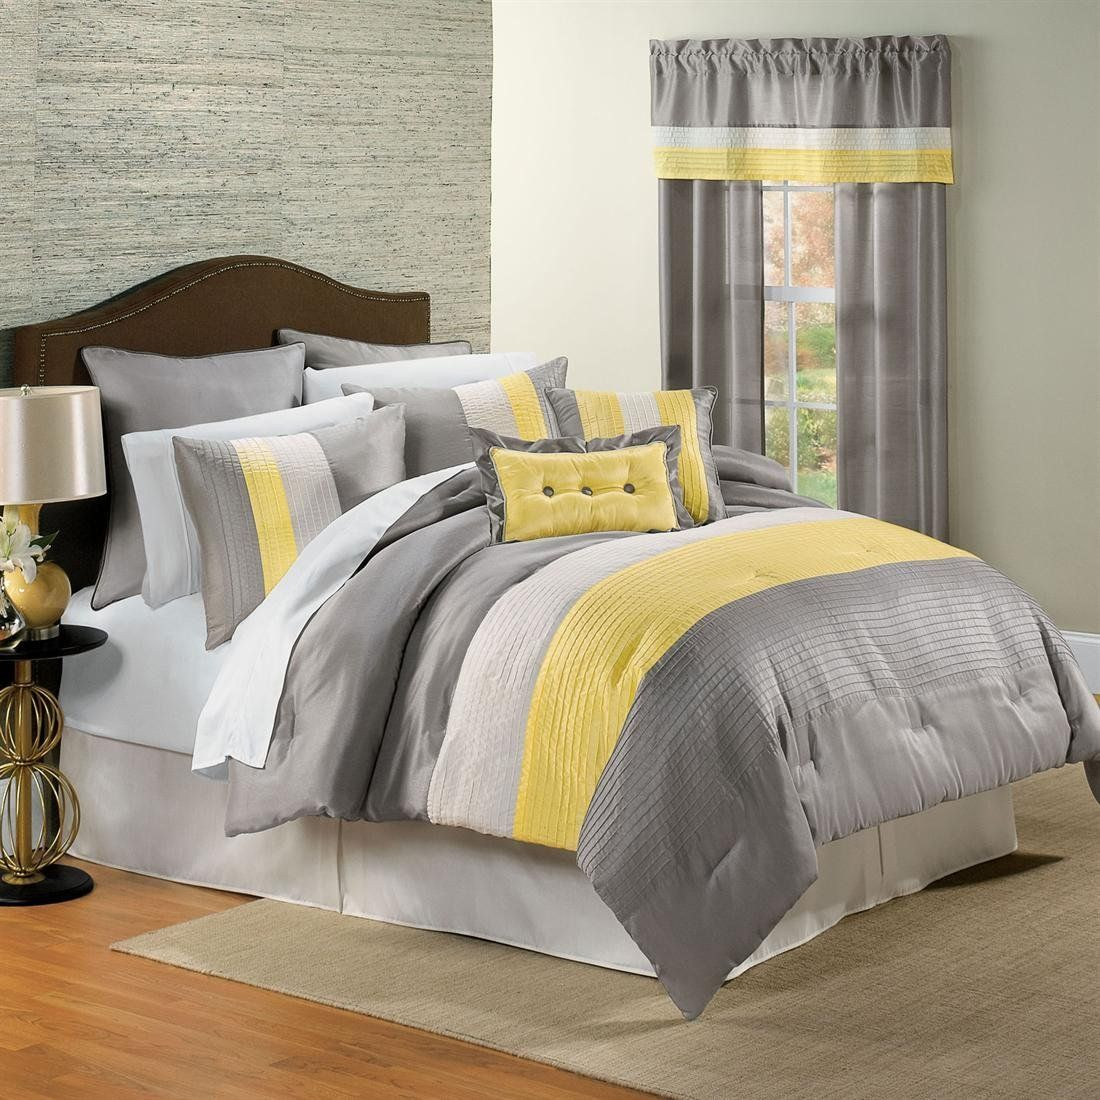 Yellow And Gray Bedroom Amazing Yellow And Gray Bedding That Will Make Your Bedroom Pop Inspiration